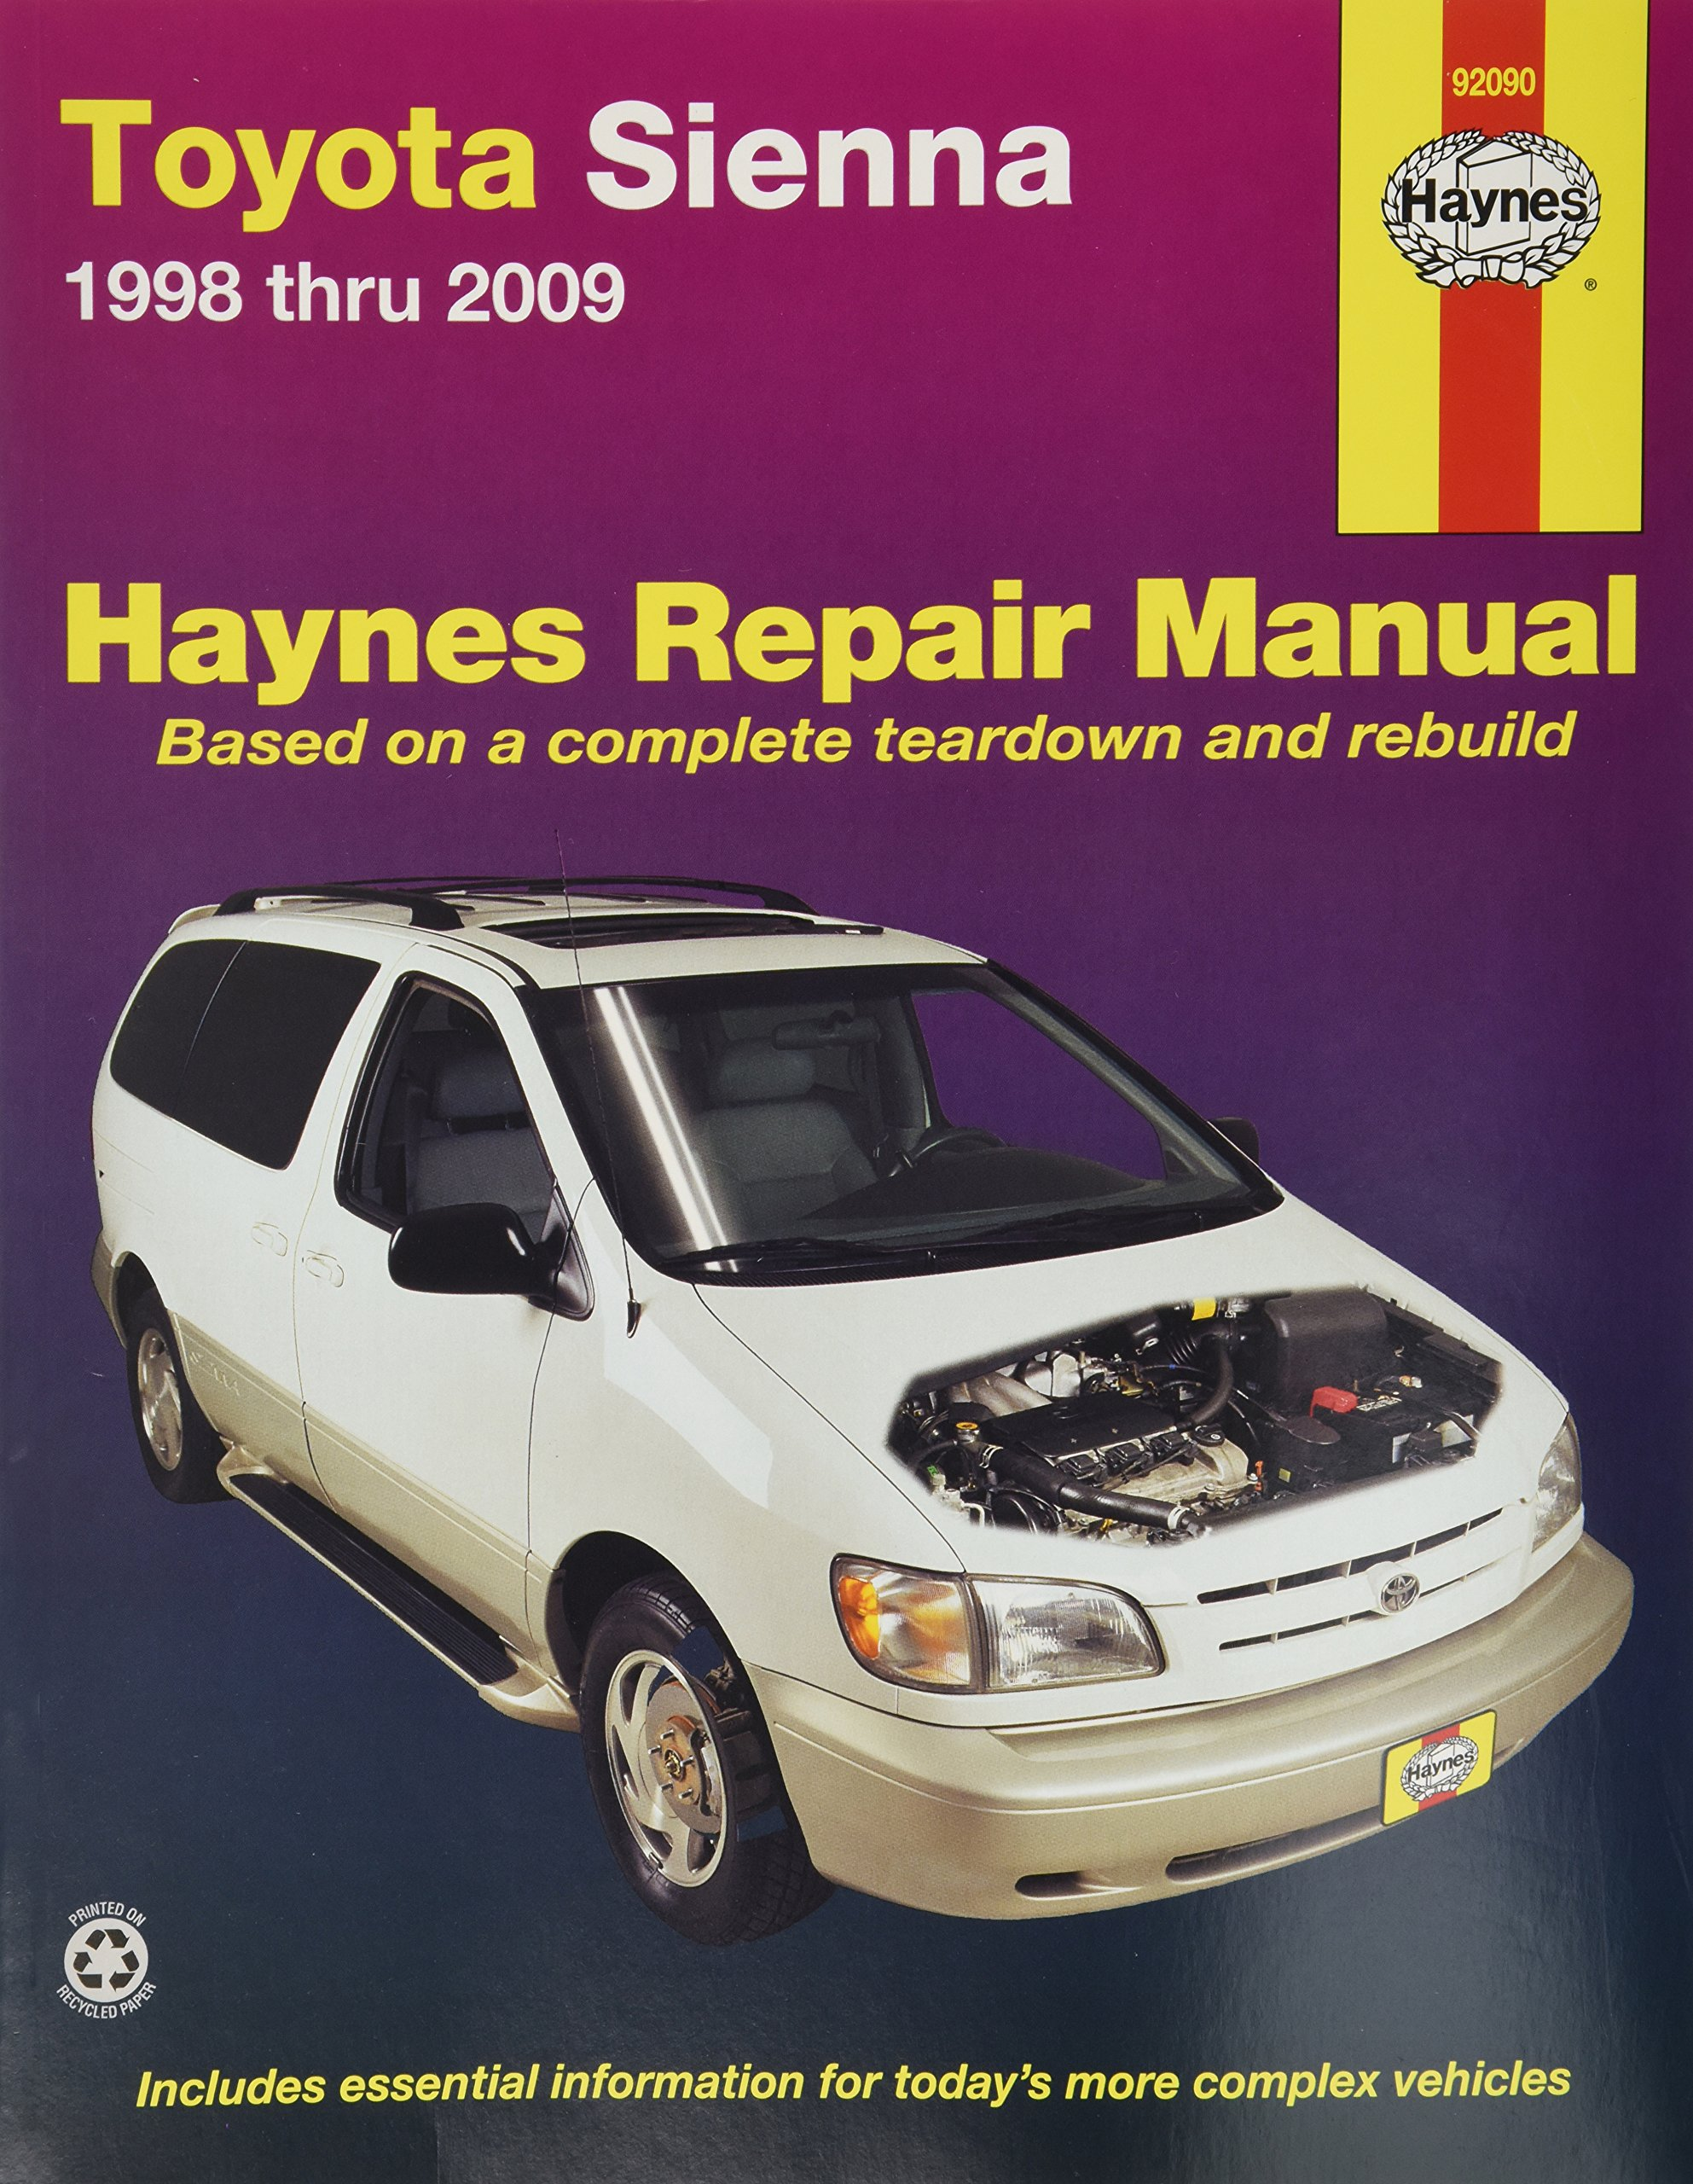 Toyota Sienna Service Manual: Television display